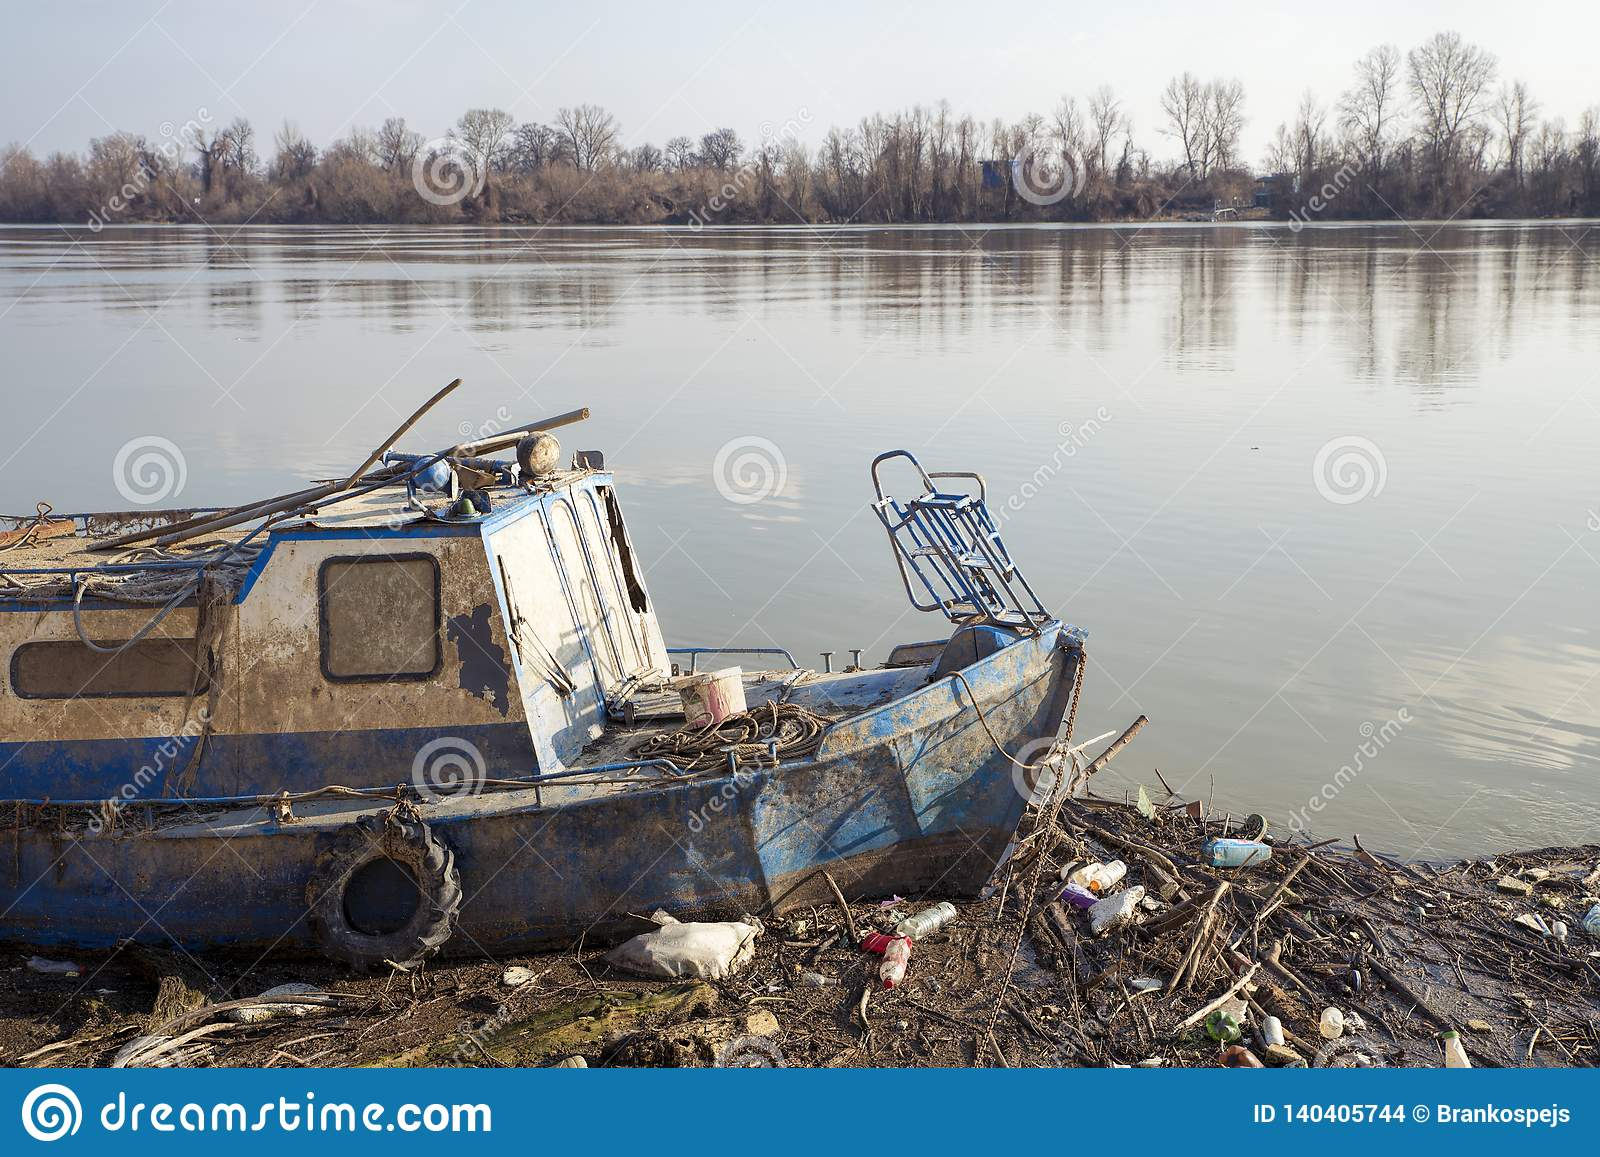 Old Fishing Boat Stuck In Trash On A Dirty Beach, Pollution